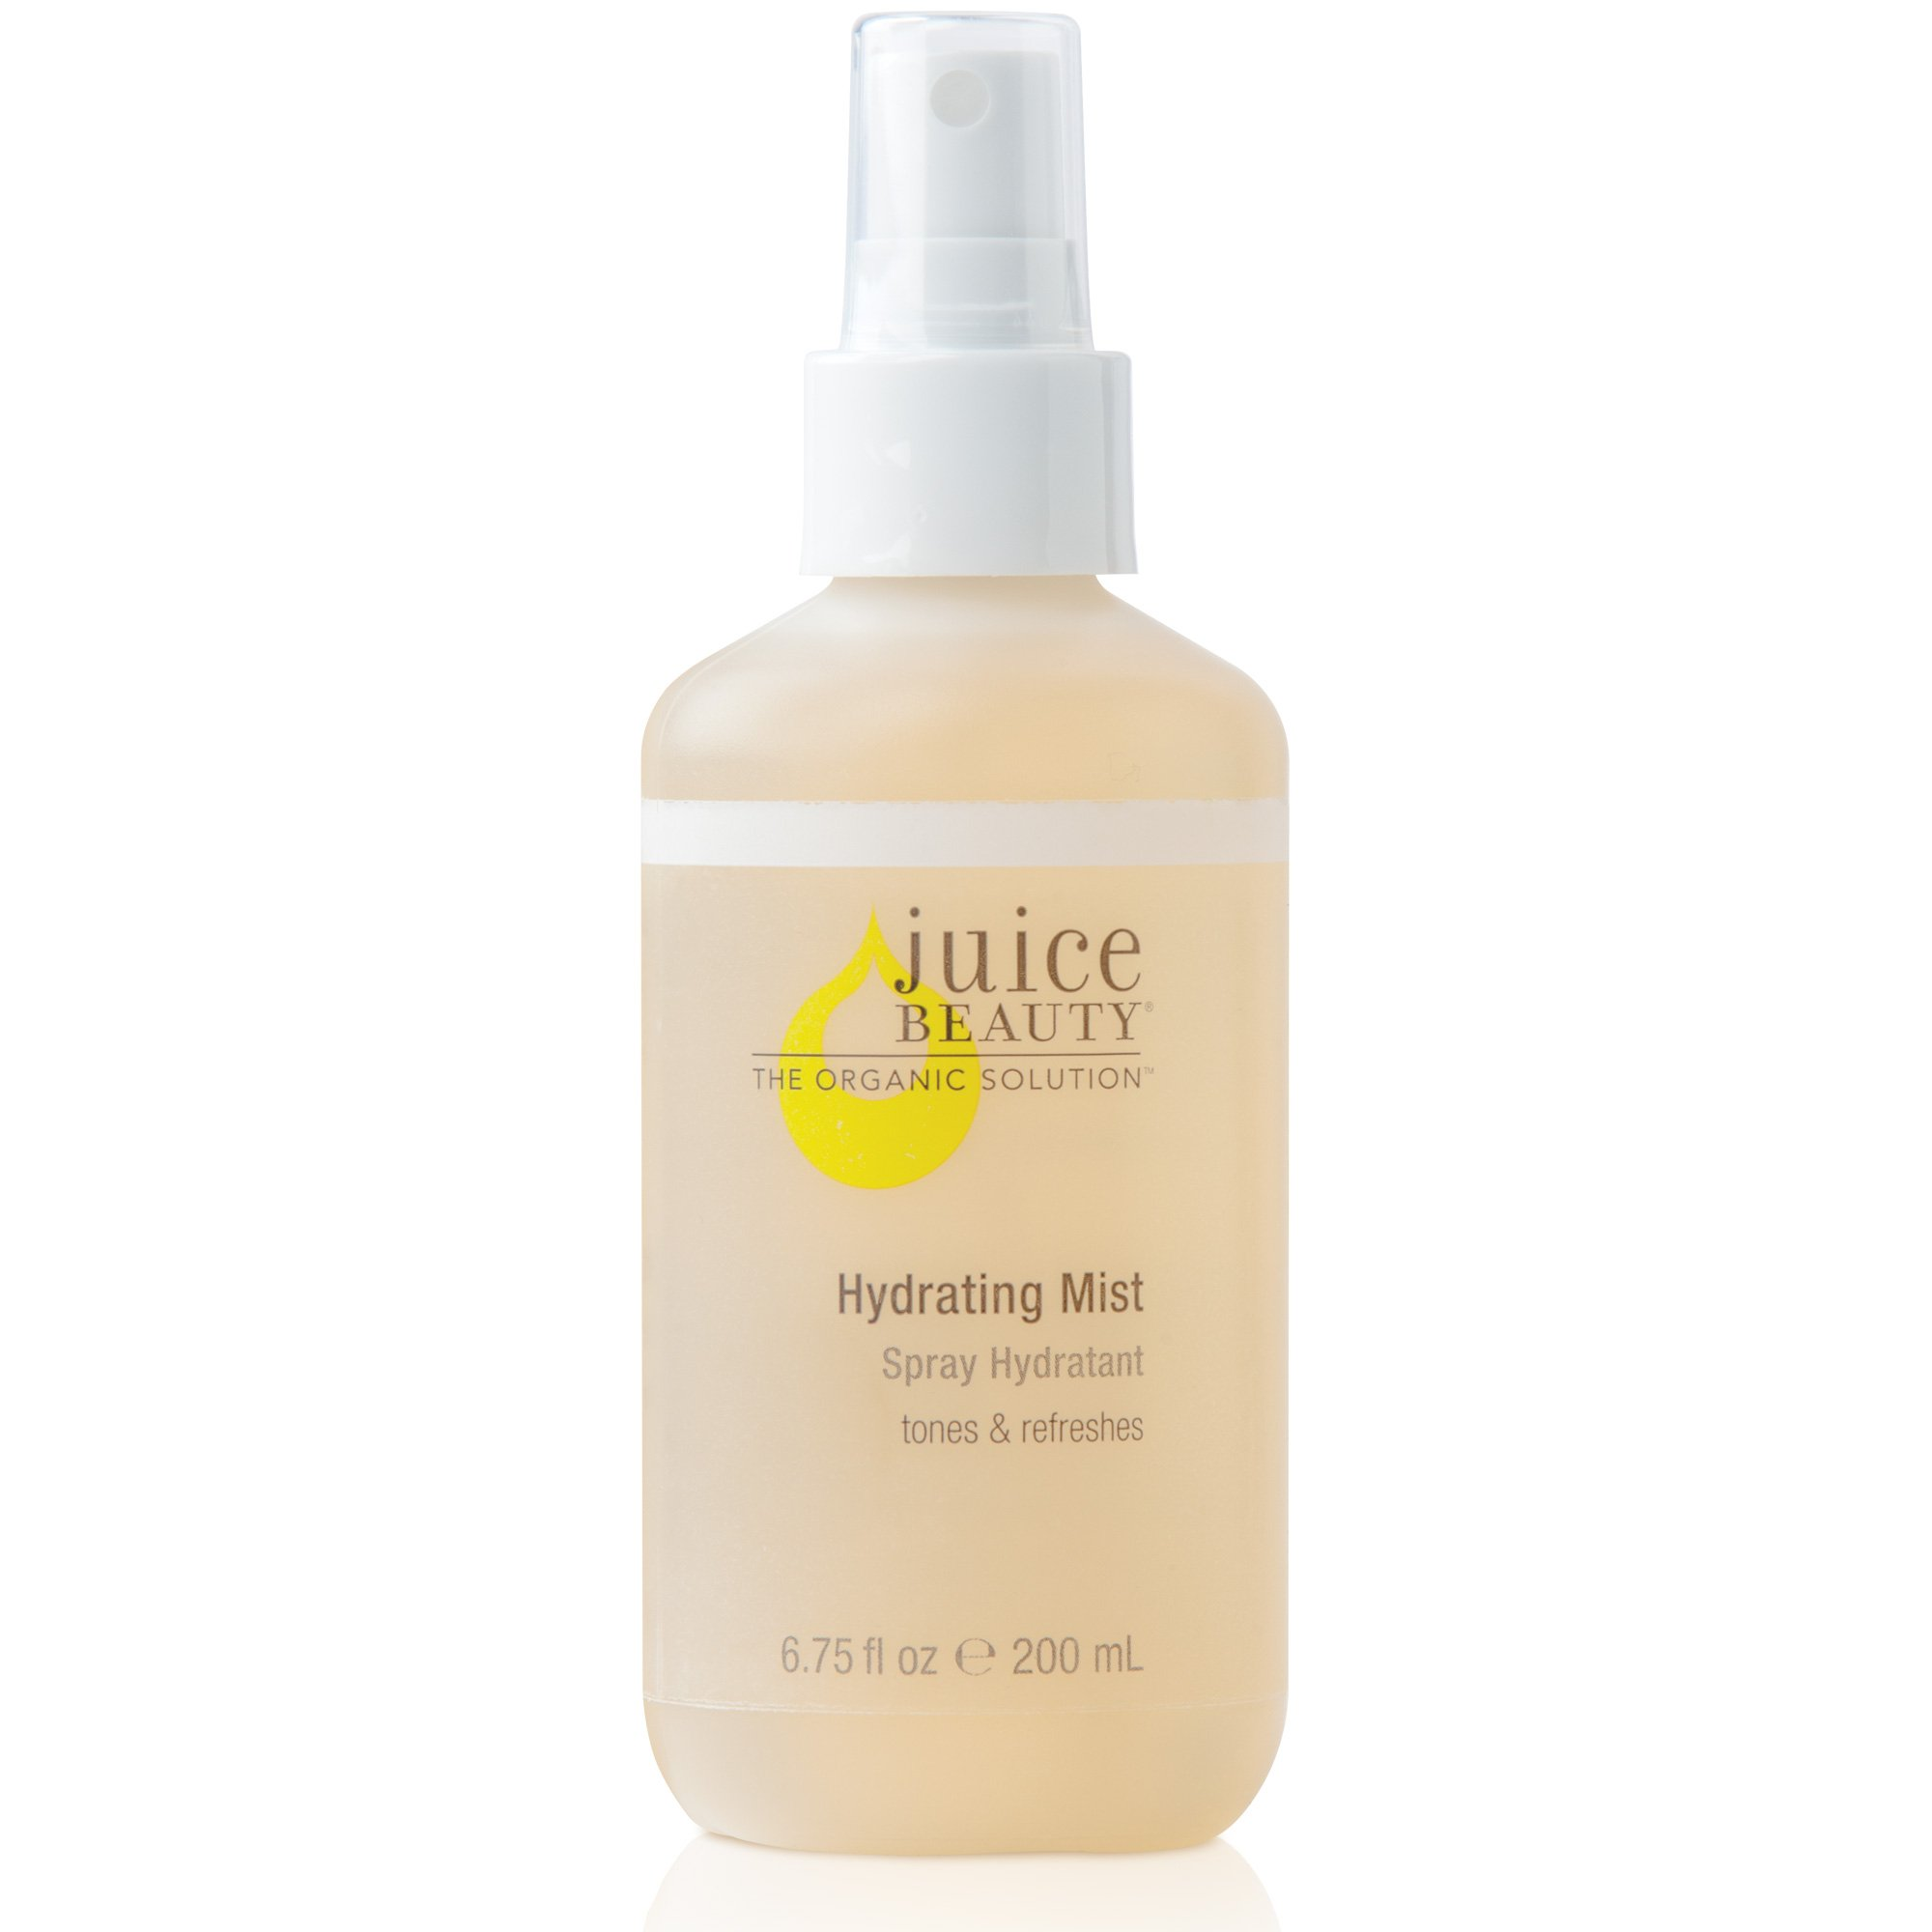 Juice Beauty Hydrating Mist, 6.75 fl. oz.